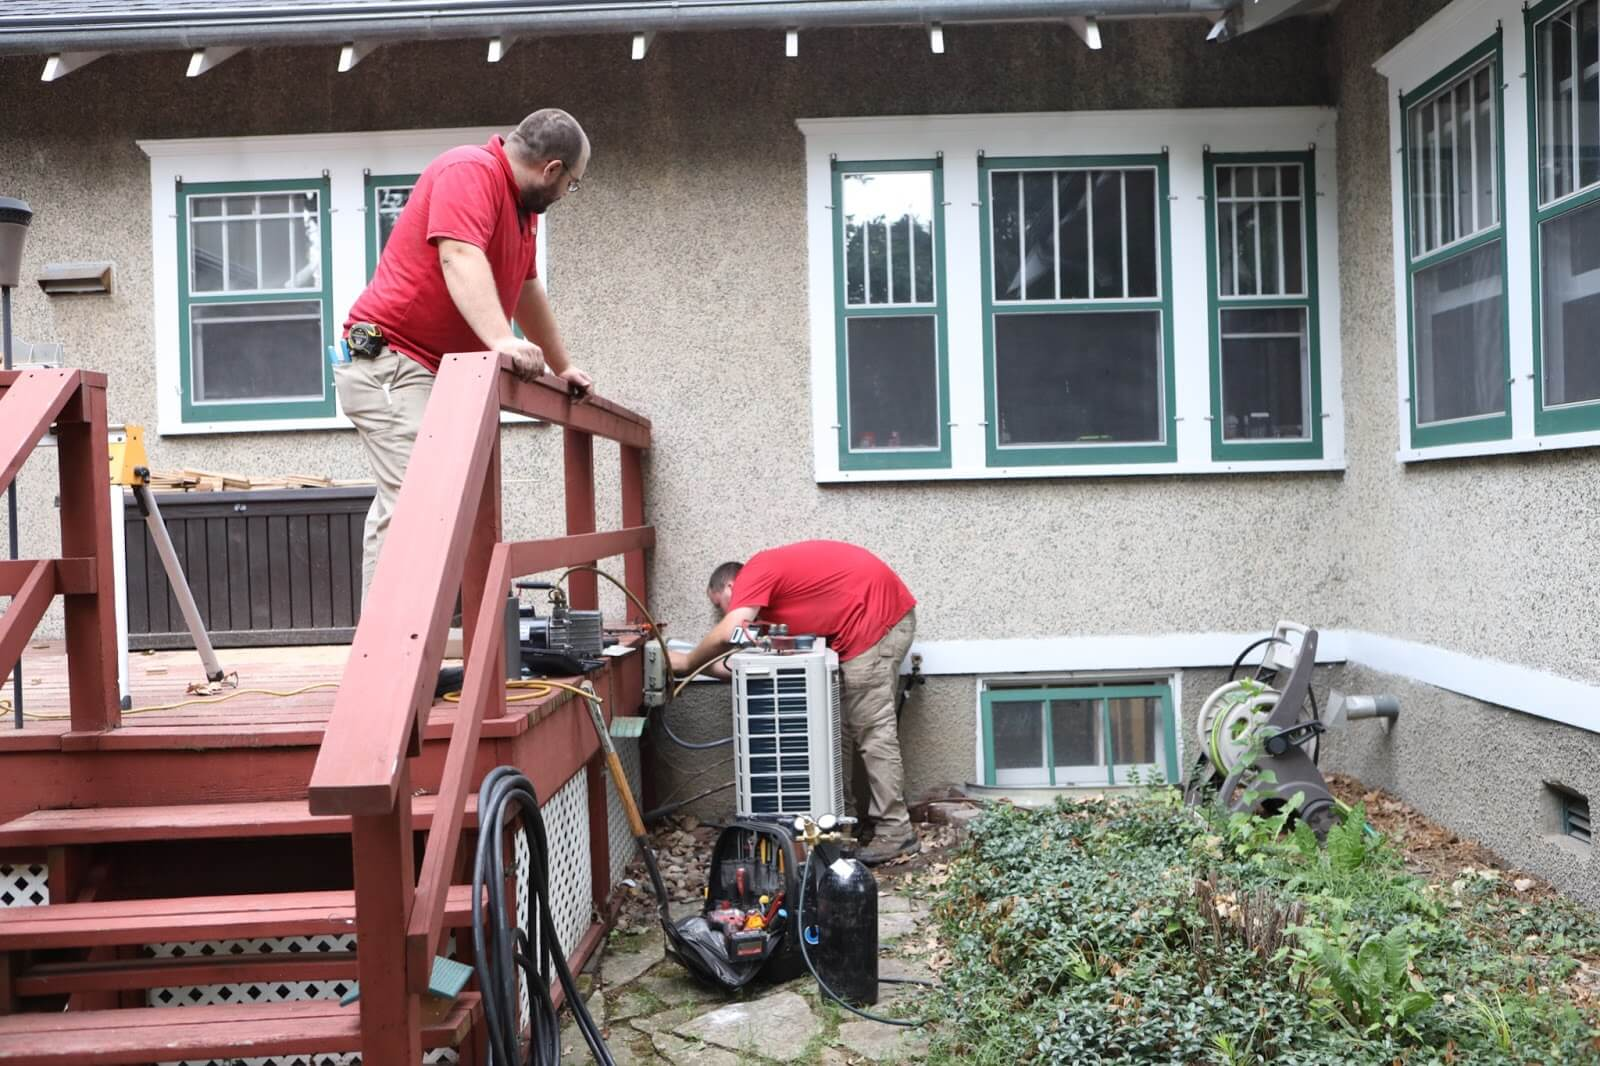 two HVAC technicians from Cyclone Contracting in Ames, IA work on an outdoor AC unit.